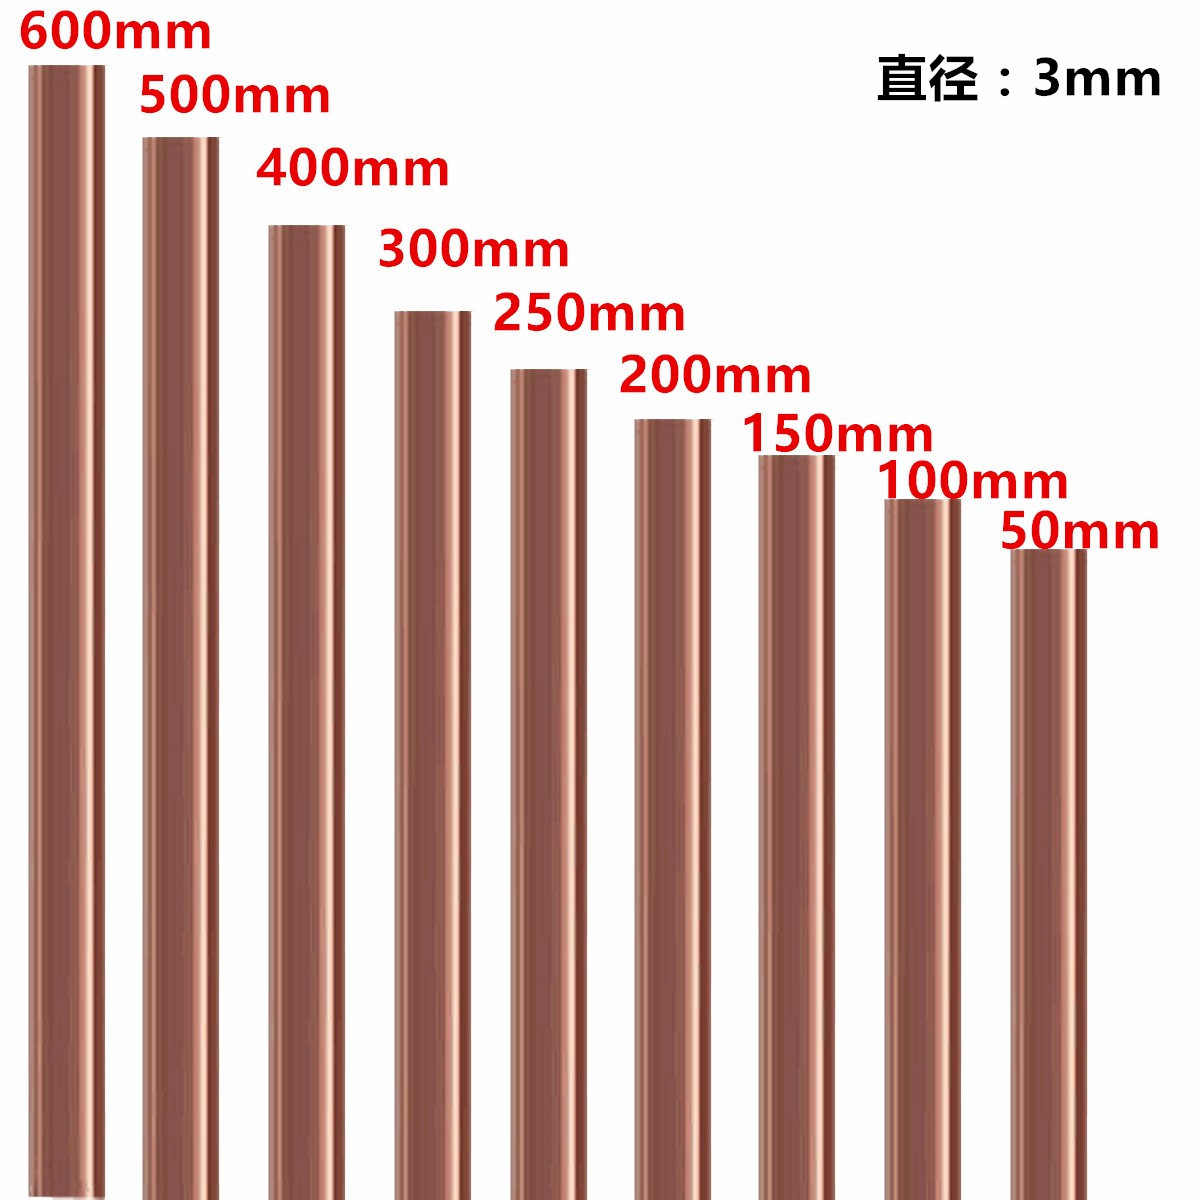 3mm Dia. Copper Round Bar Rod Milling Welding Metalworking 50-500mm Length